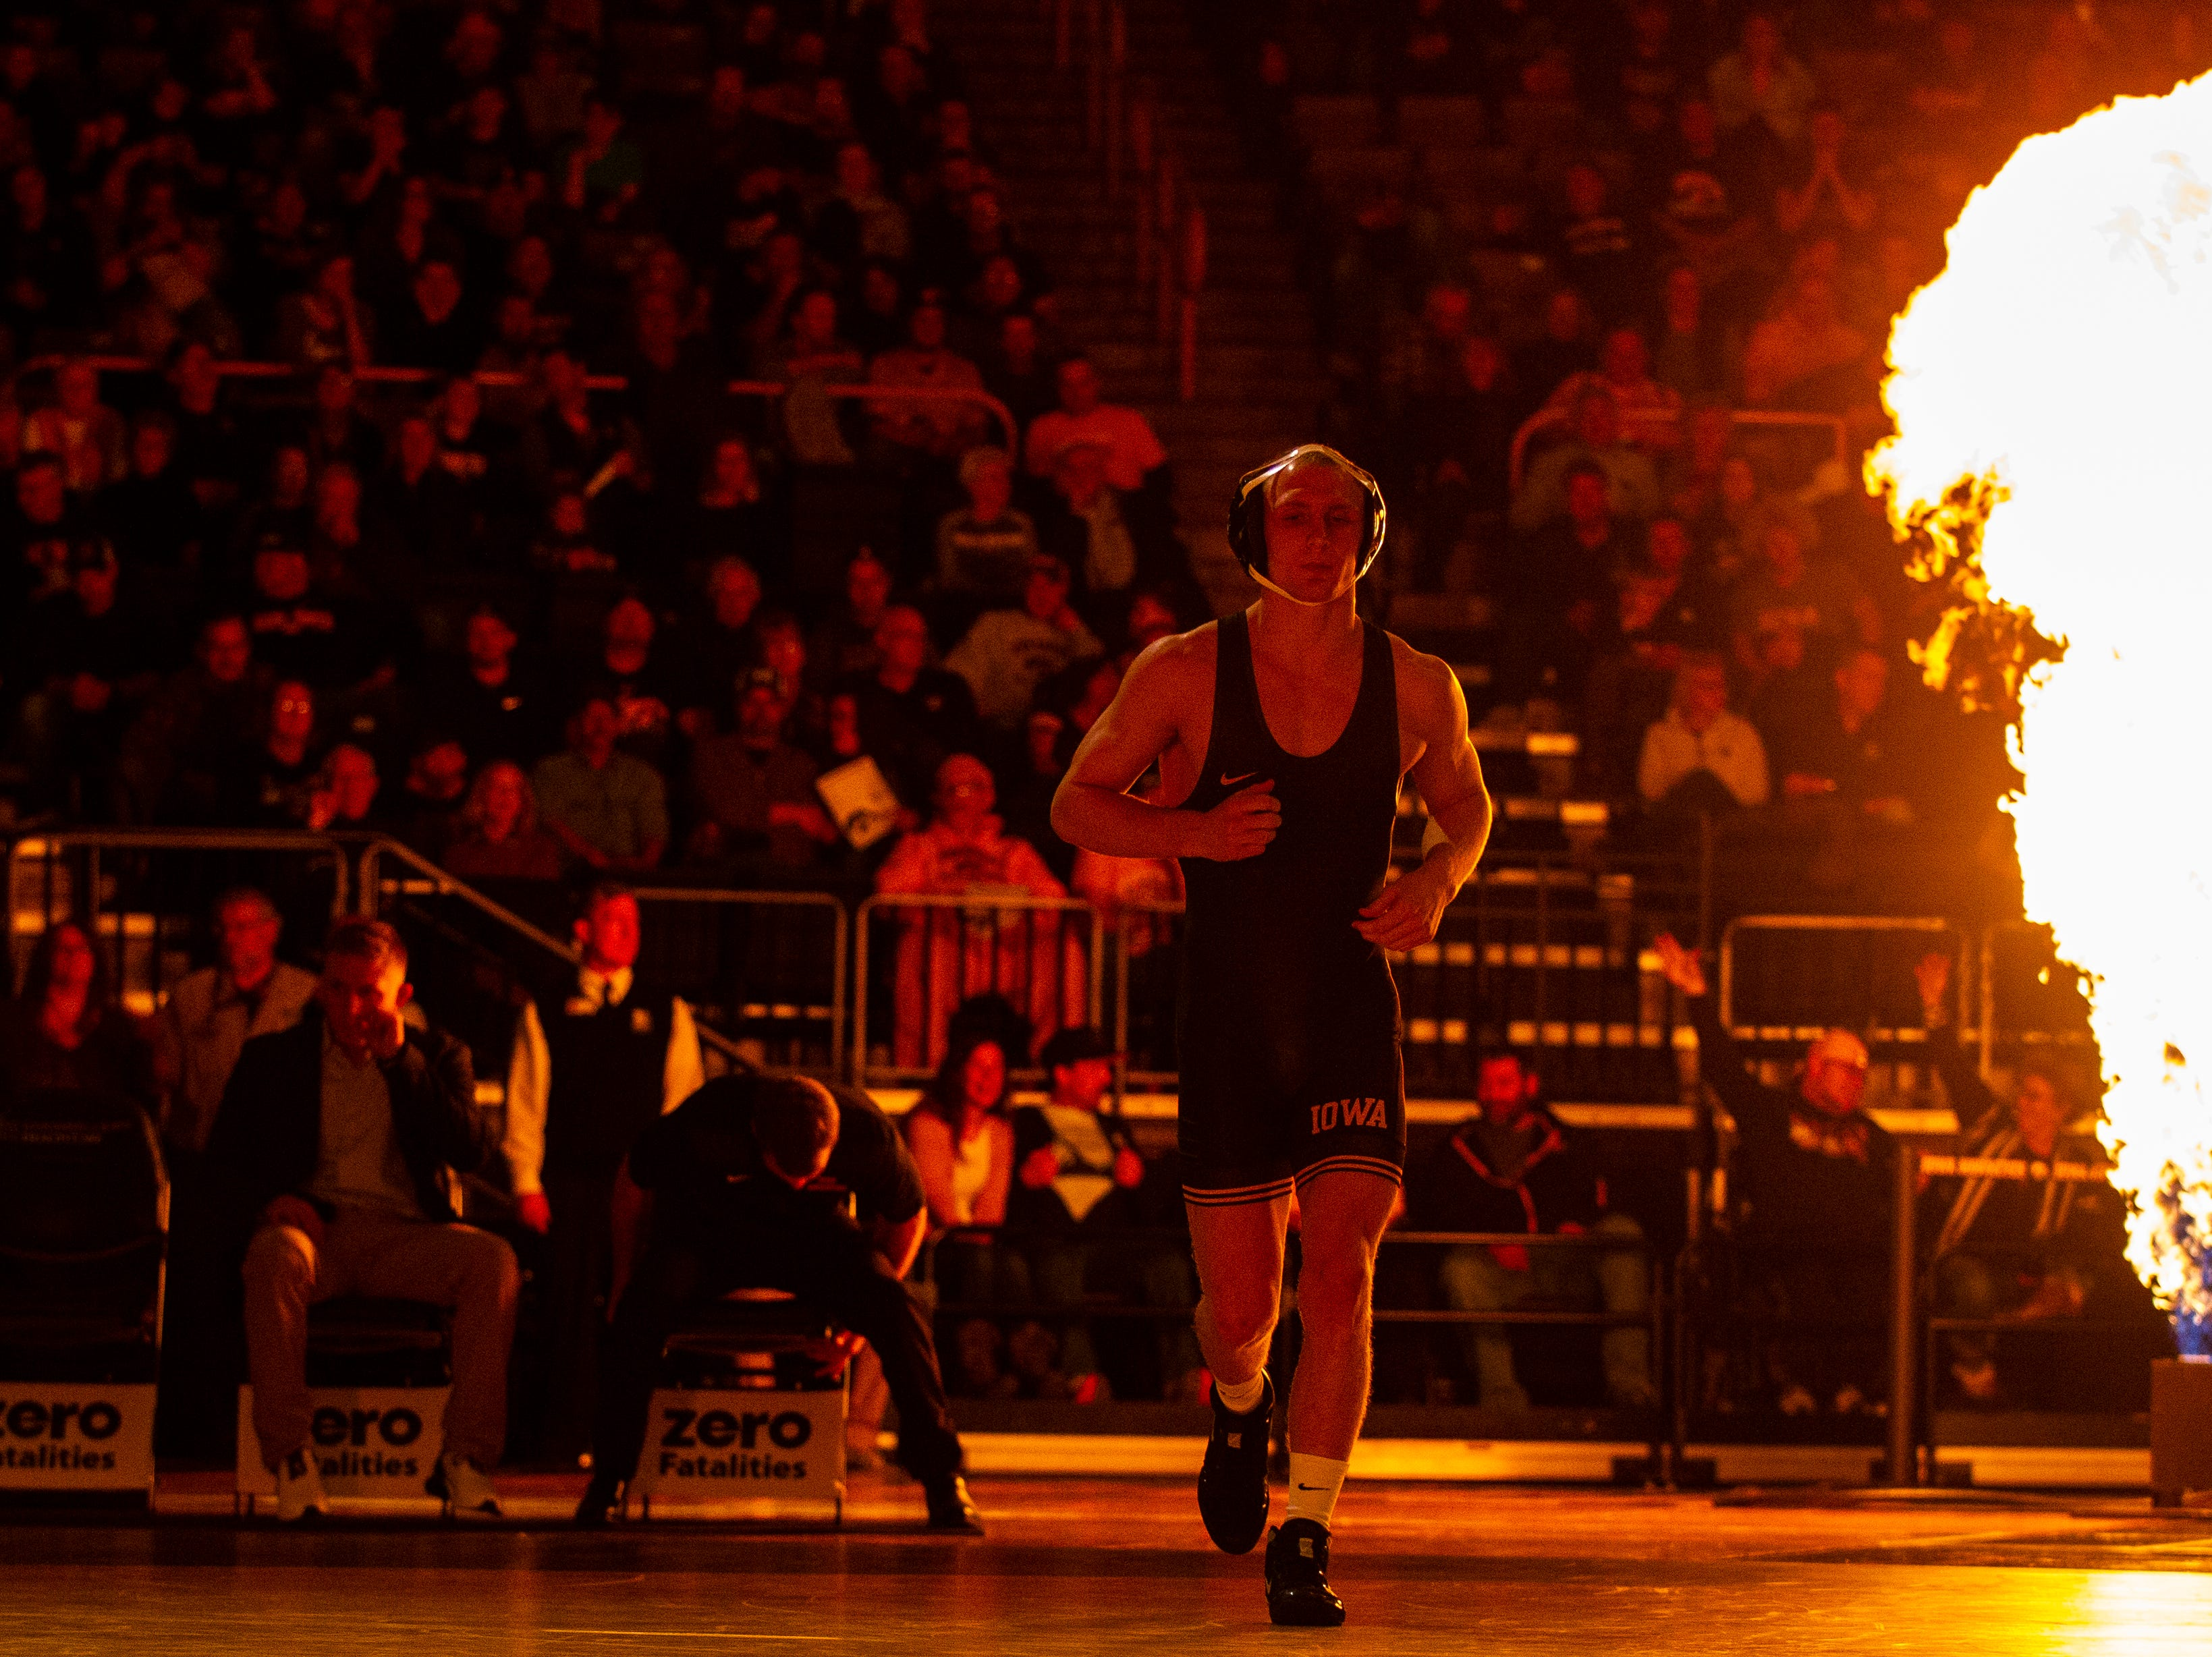 Iowa's Kaleb Young is introduced before his match at 157 during a NCAA Cy-Hawk series wrestling dual on Saturday, Dec. 1, 2018, at Carver-Hawkeye Arena in Iowa City.